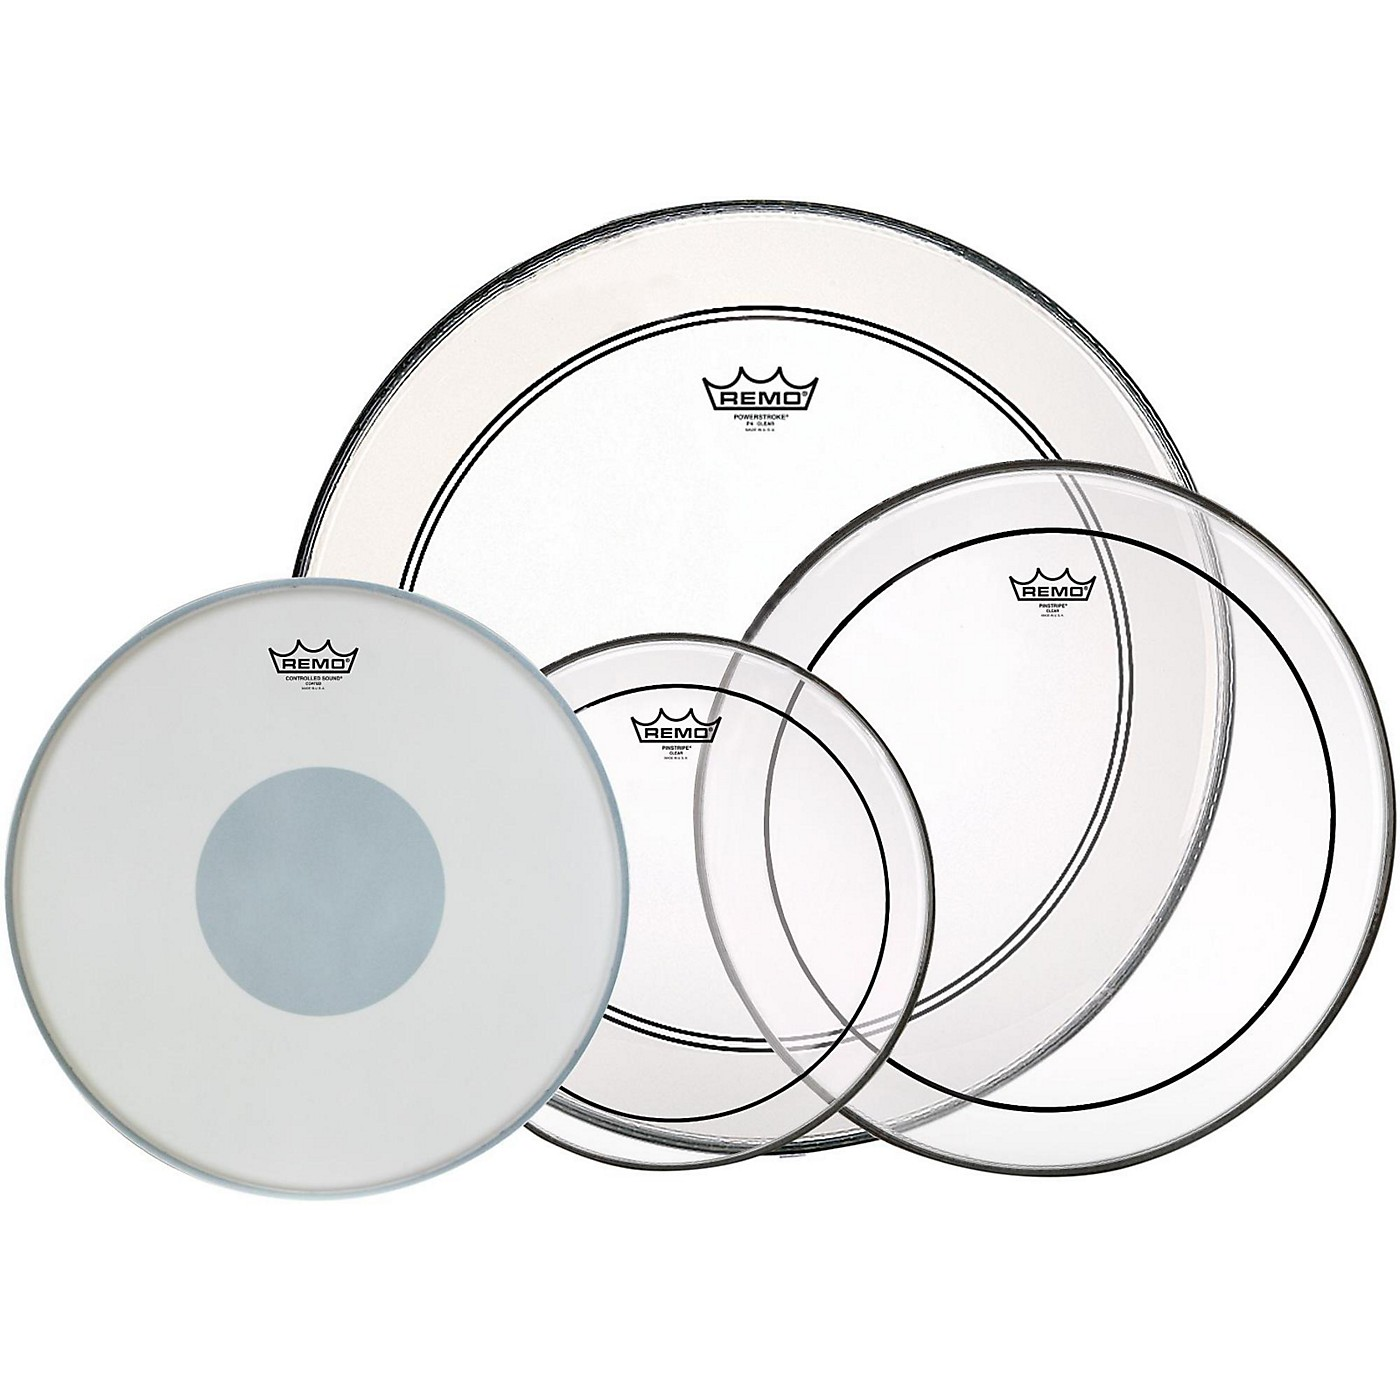 Remo 4-Piece Drumhead Pack thumbnail